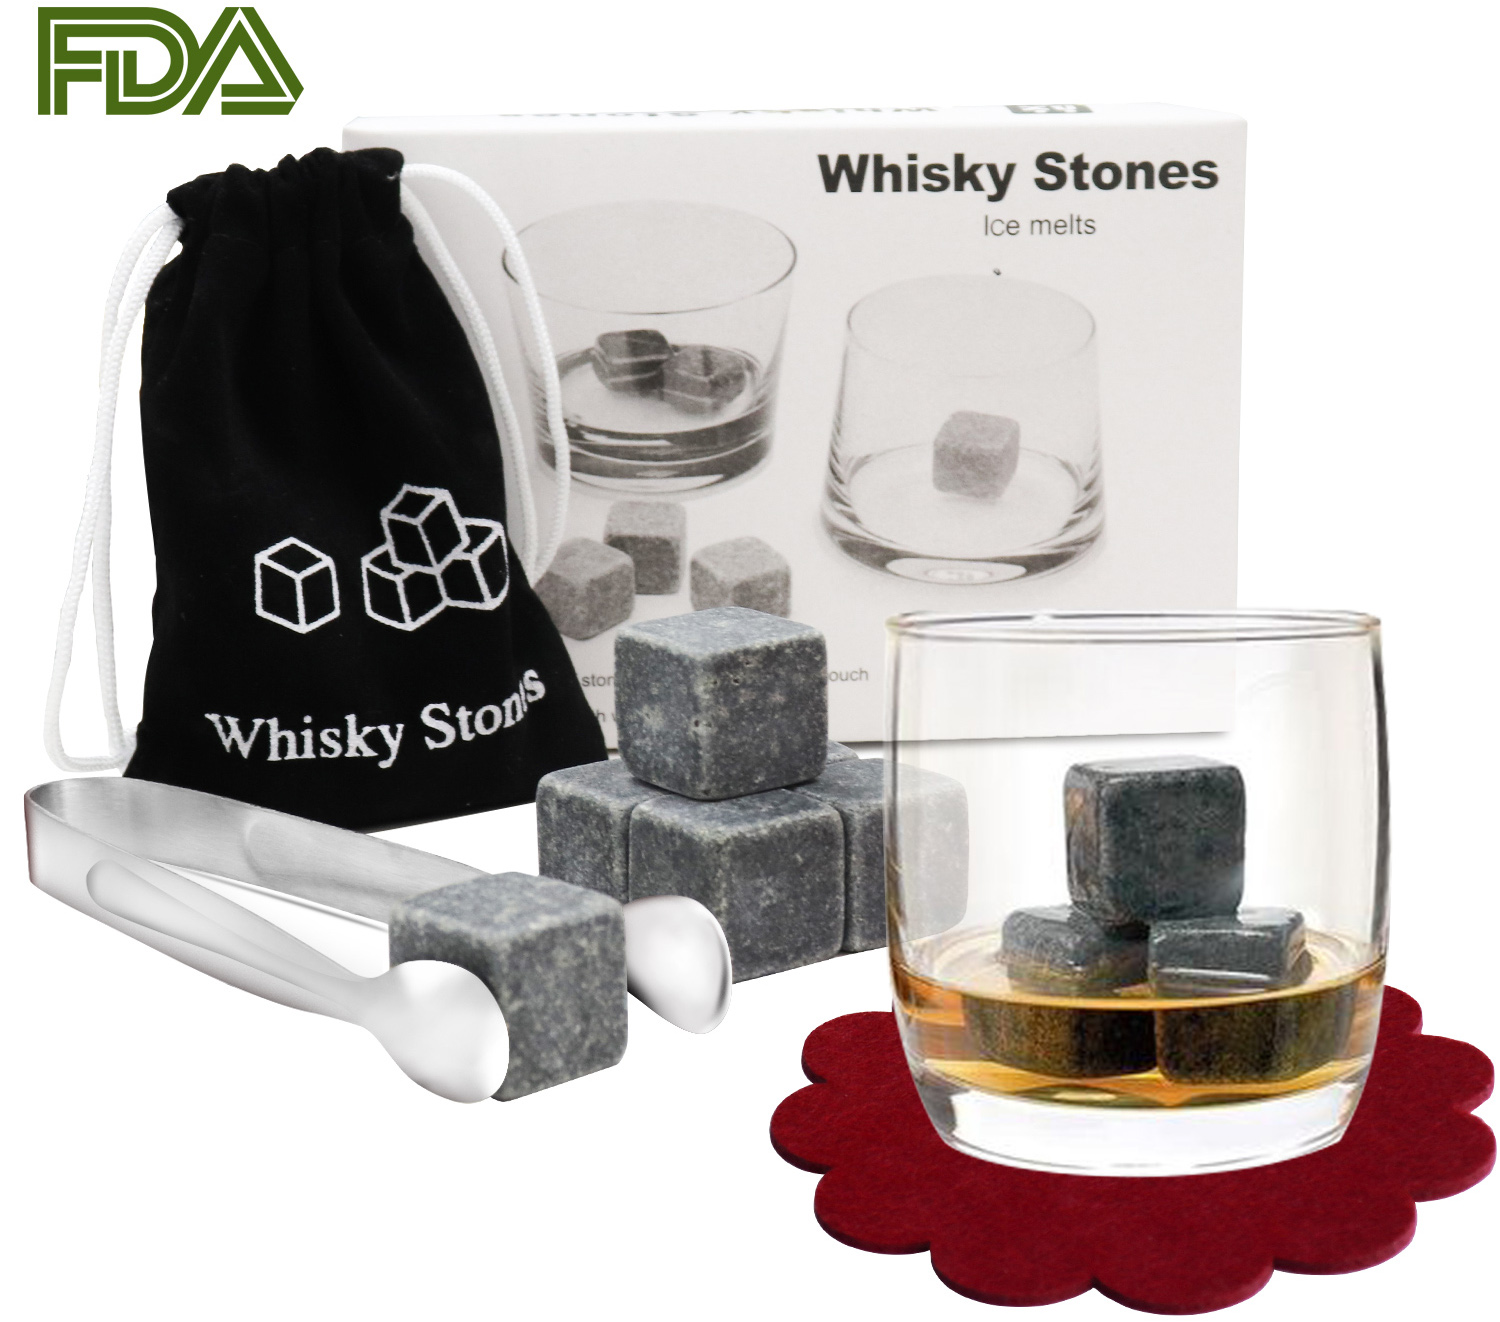 [With 2PCS Red Coasters and 1PCS Stainless Steel Tongs] Whisky Stones,PEMOTech [9PCS] Whiskey Beer Stones Whisky Chilling Rocks Ice Stones Drinks Cooler Rocks Granite With a Muslin Pouch, Perfect Set